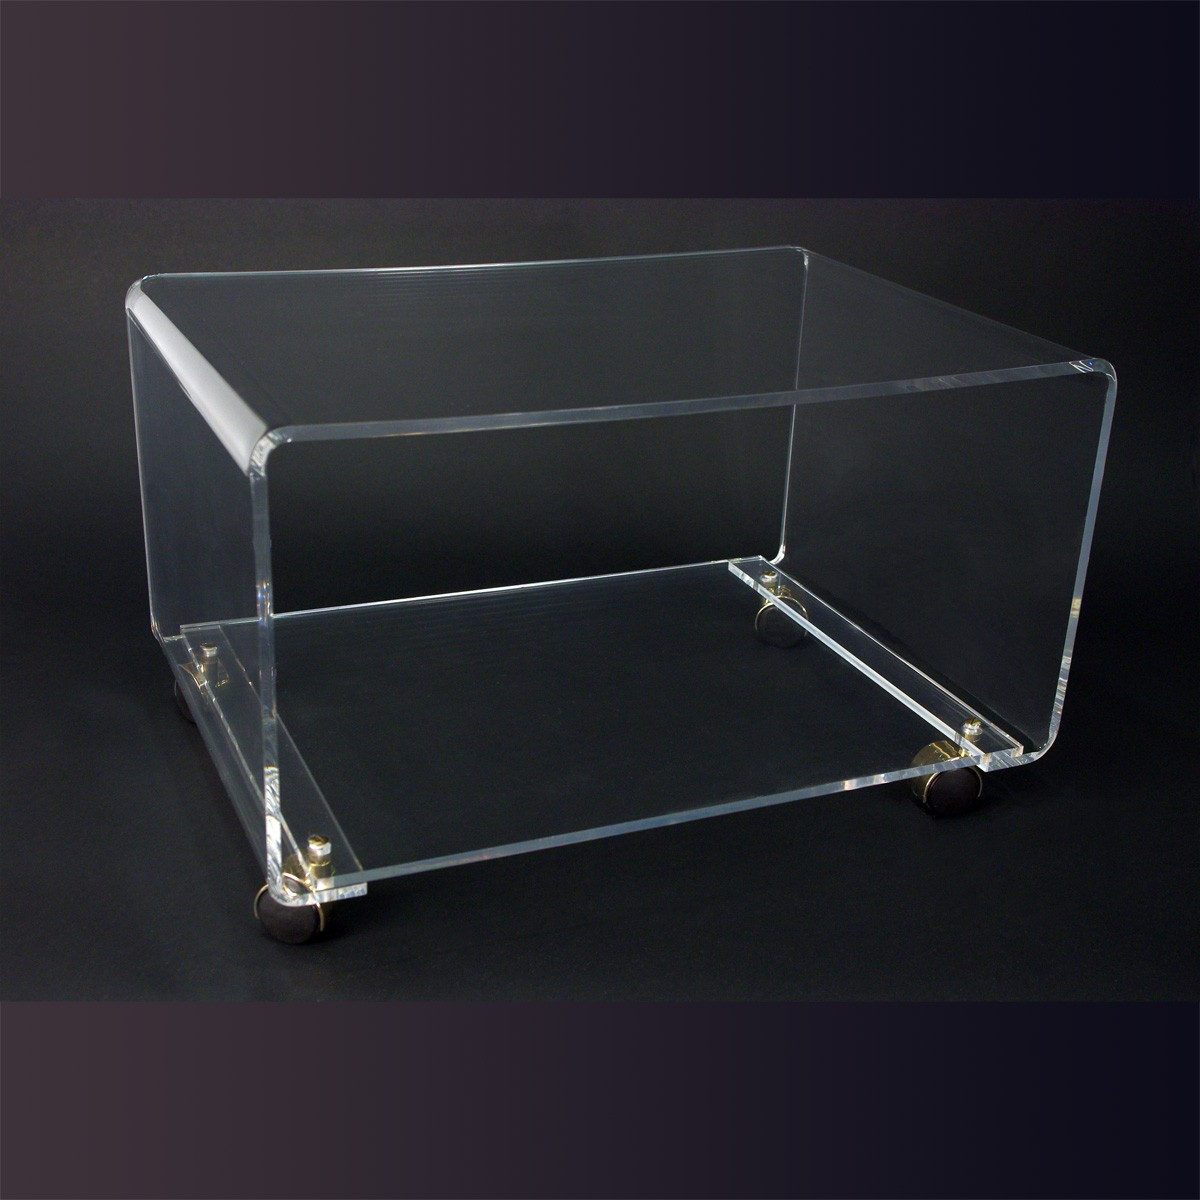 table basse plexiglas good mikado table basse en verre et. Black Bedroom Furniture Sets. Home Design Ideas